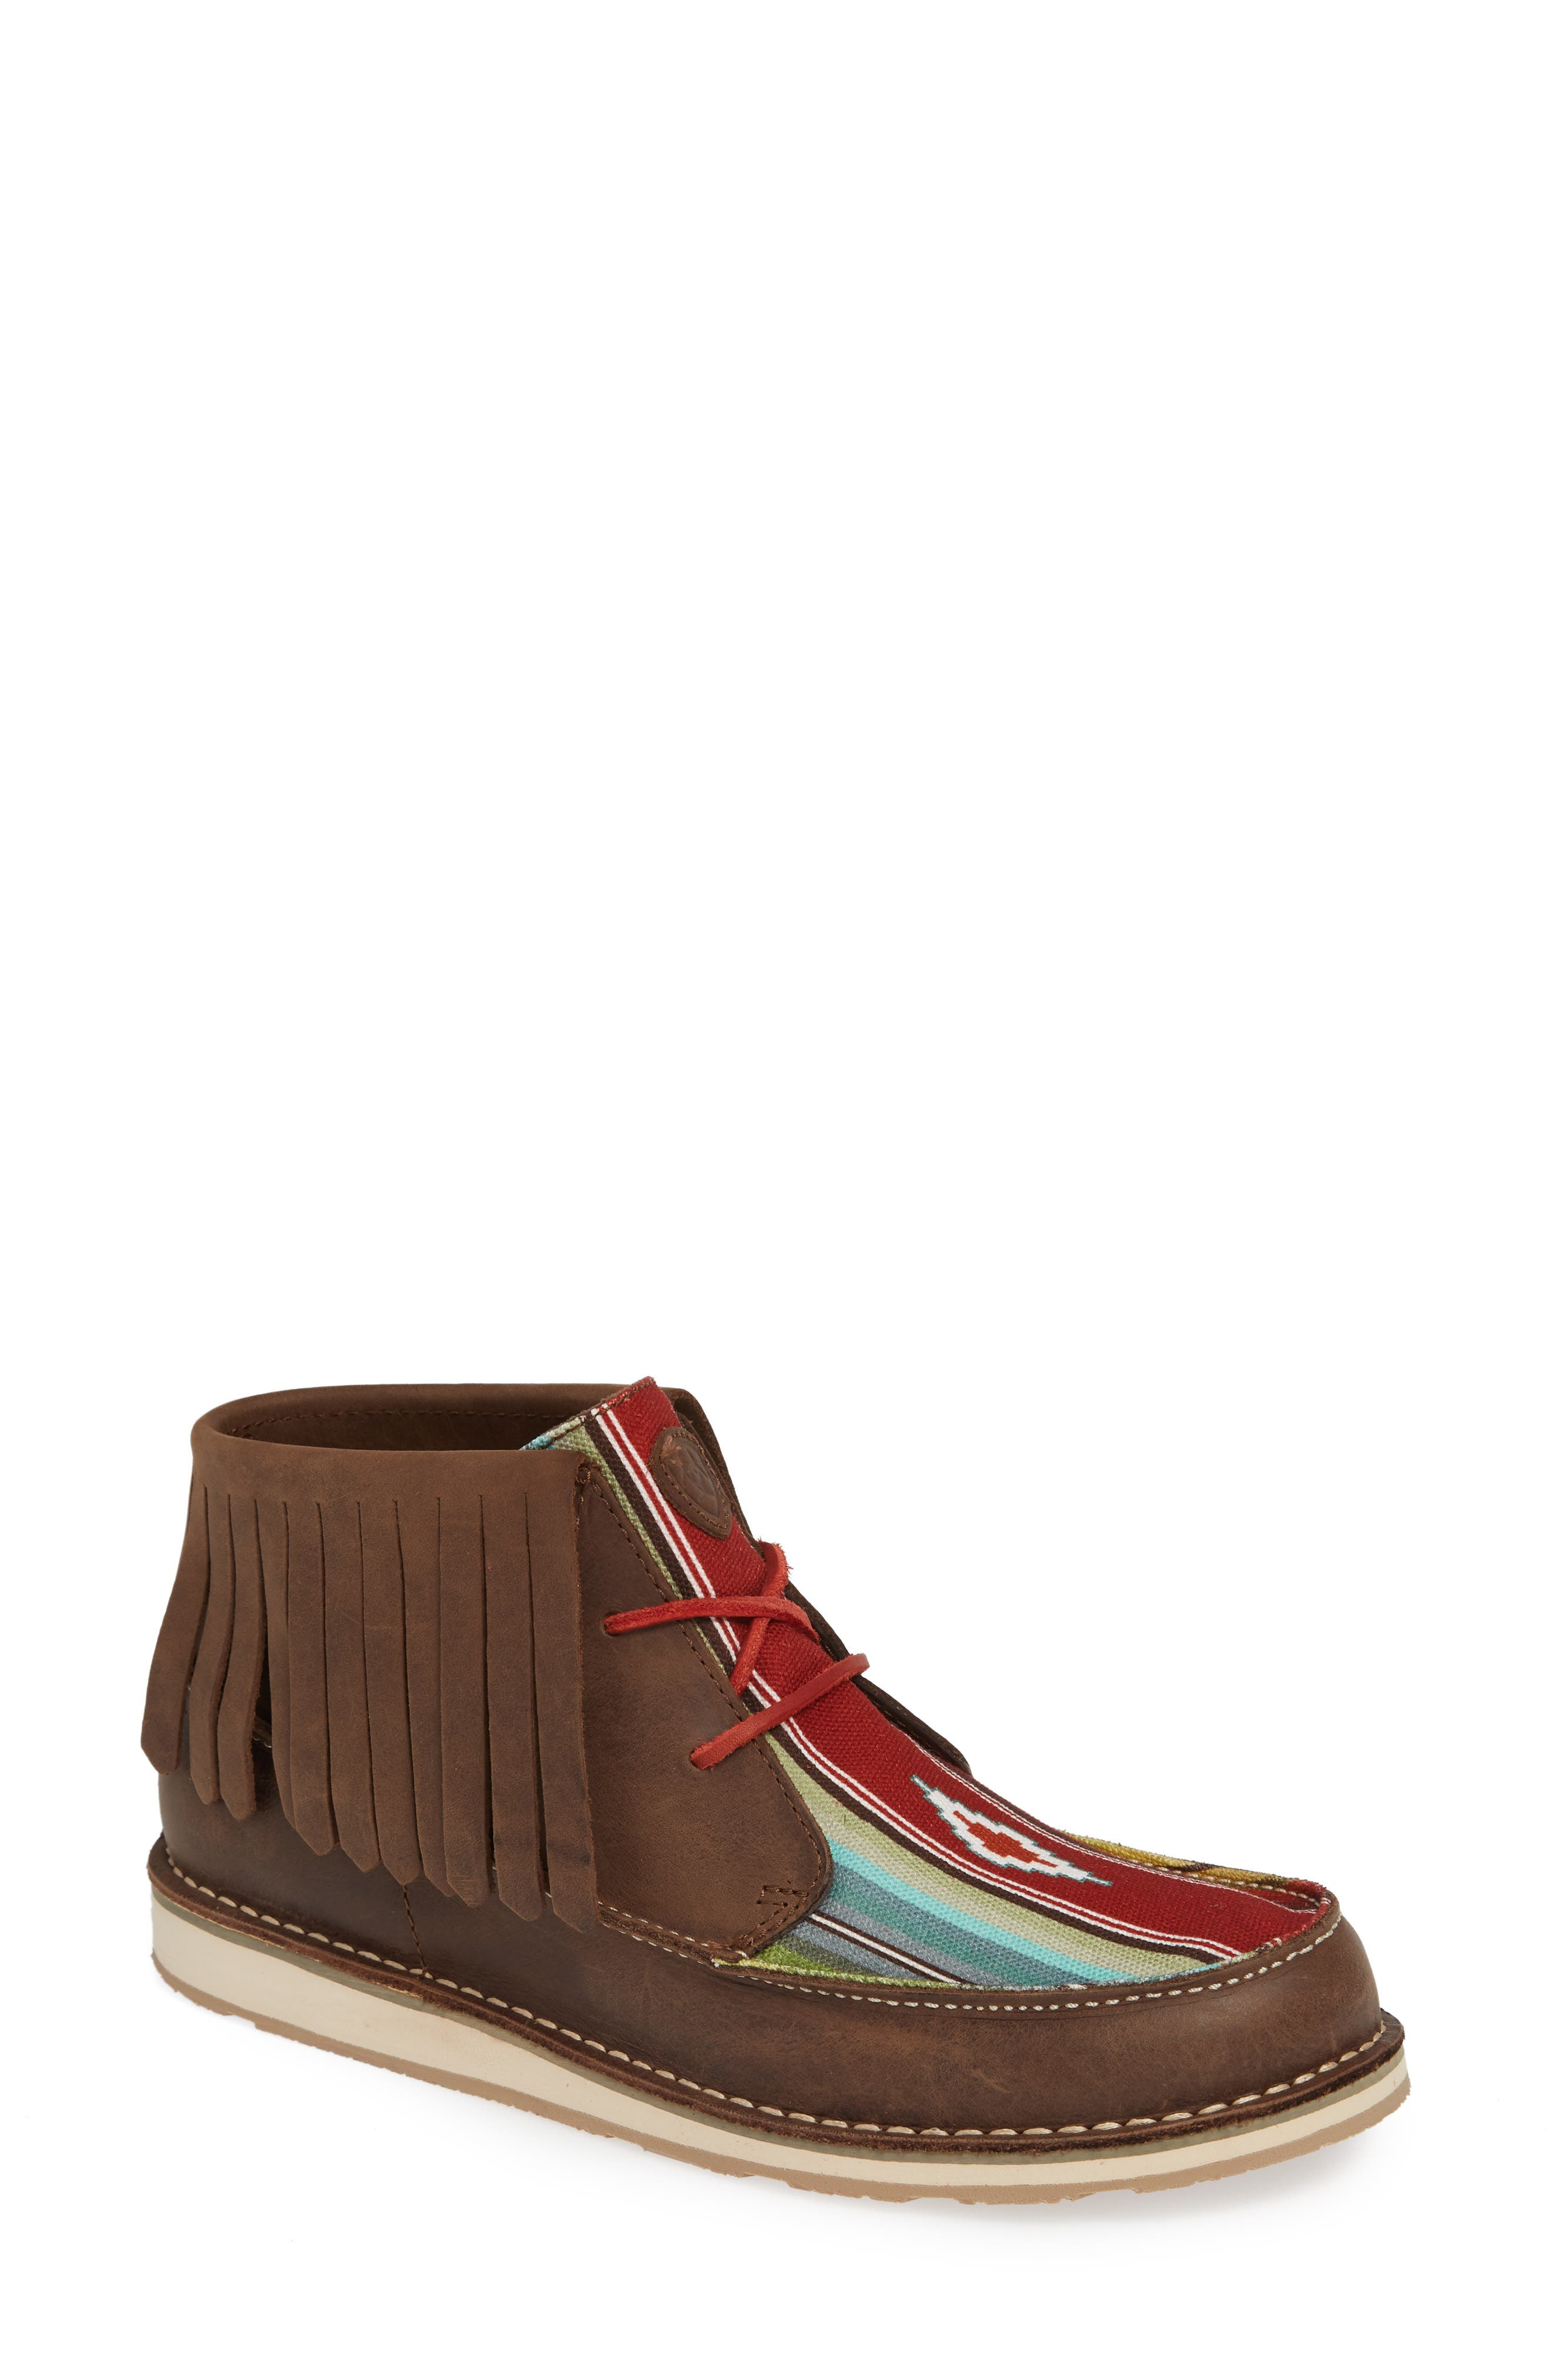 Cruiser Fringe Chukka Boot,                             Main thumbnail 1, color,                             PALM BROWN SADDLE LEATHER